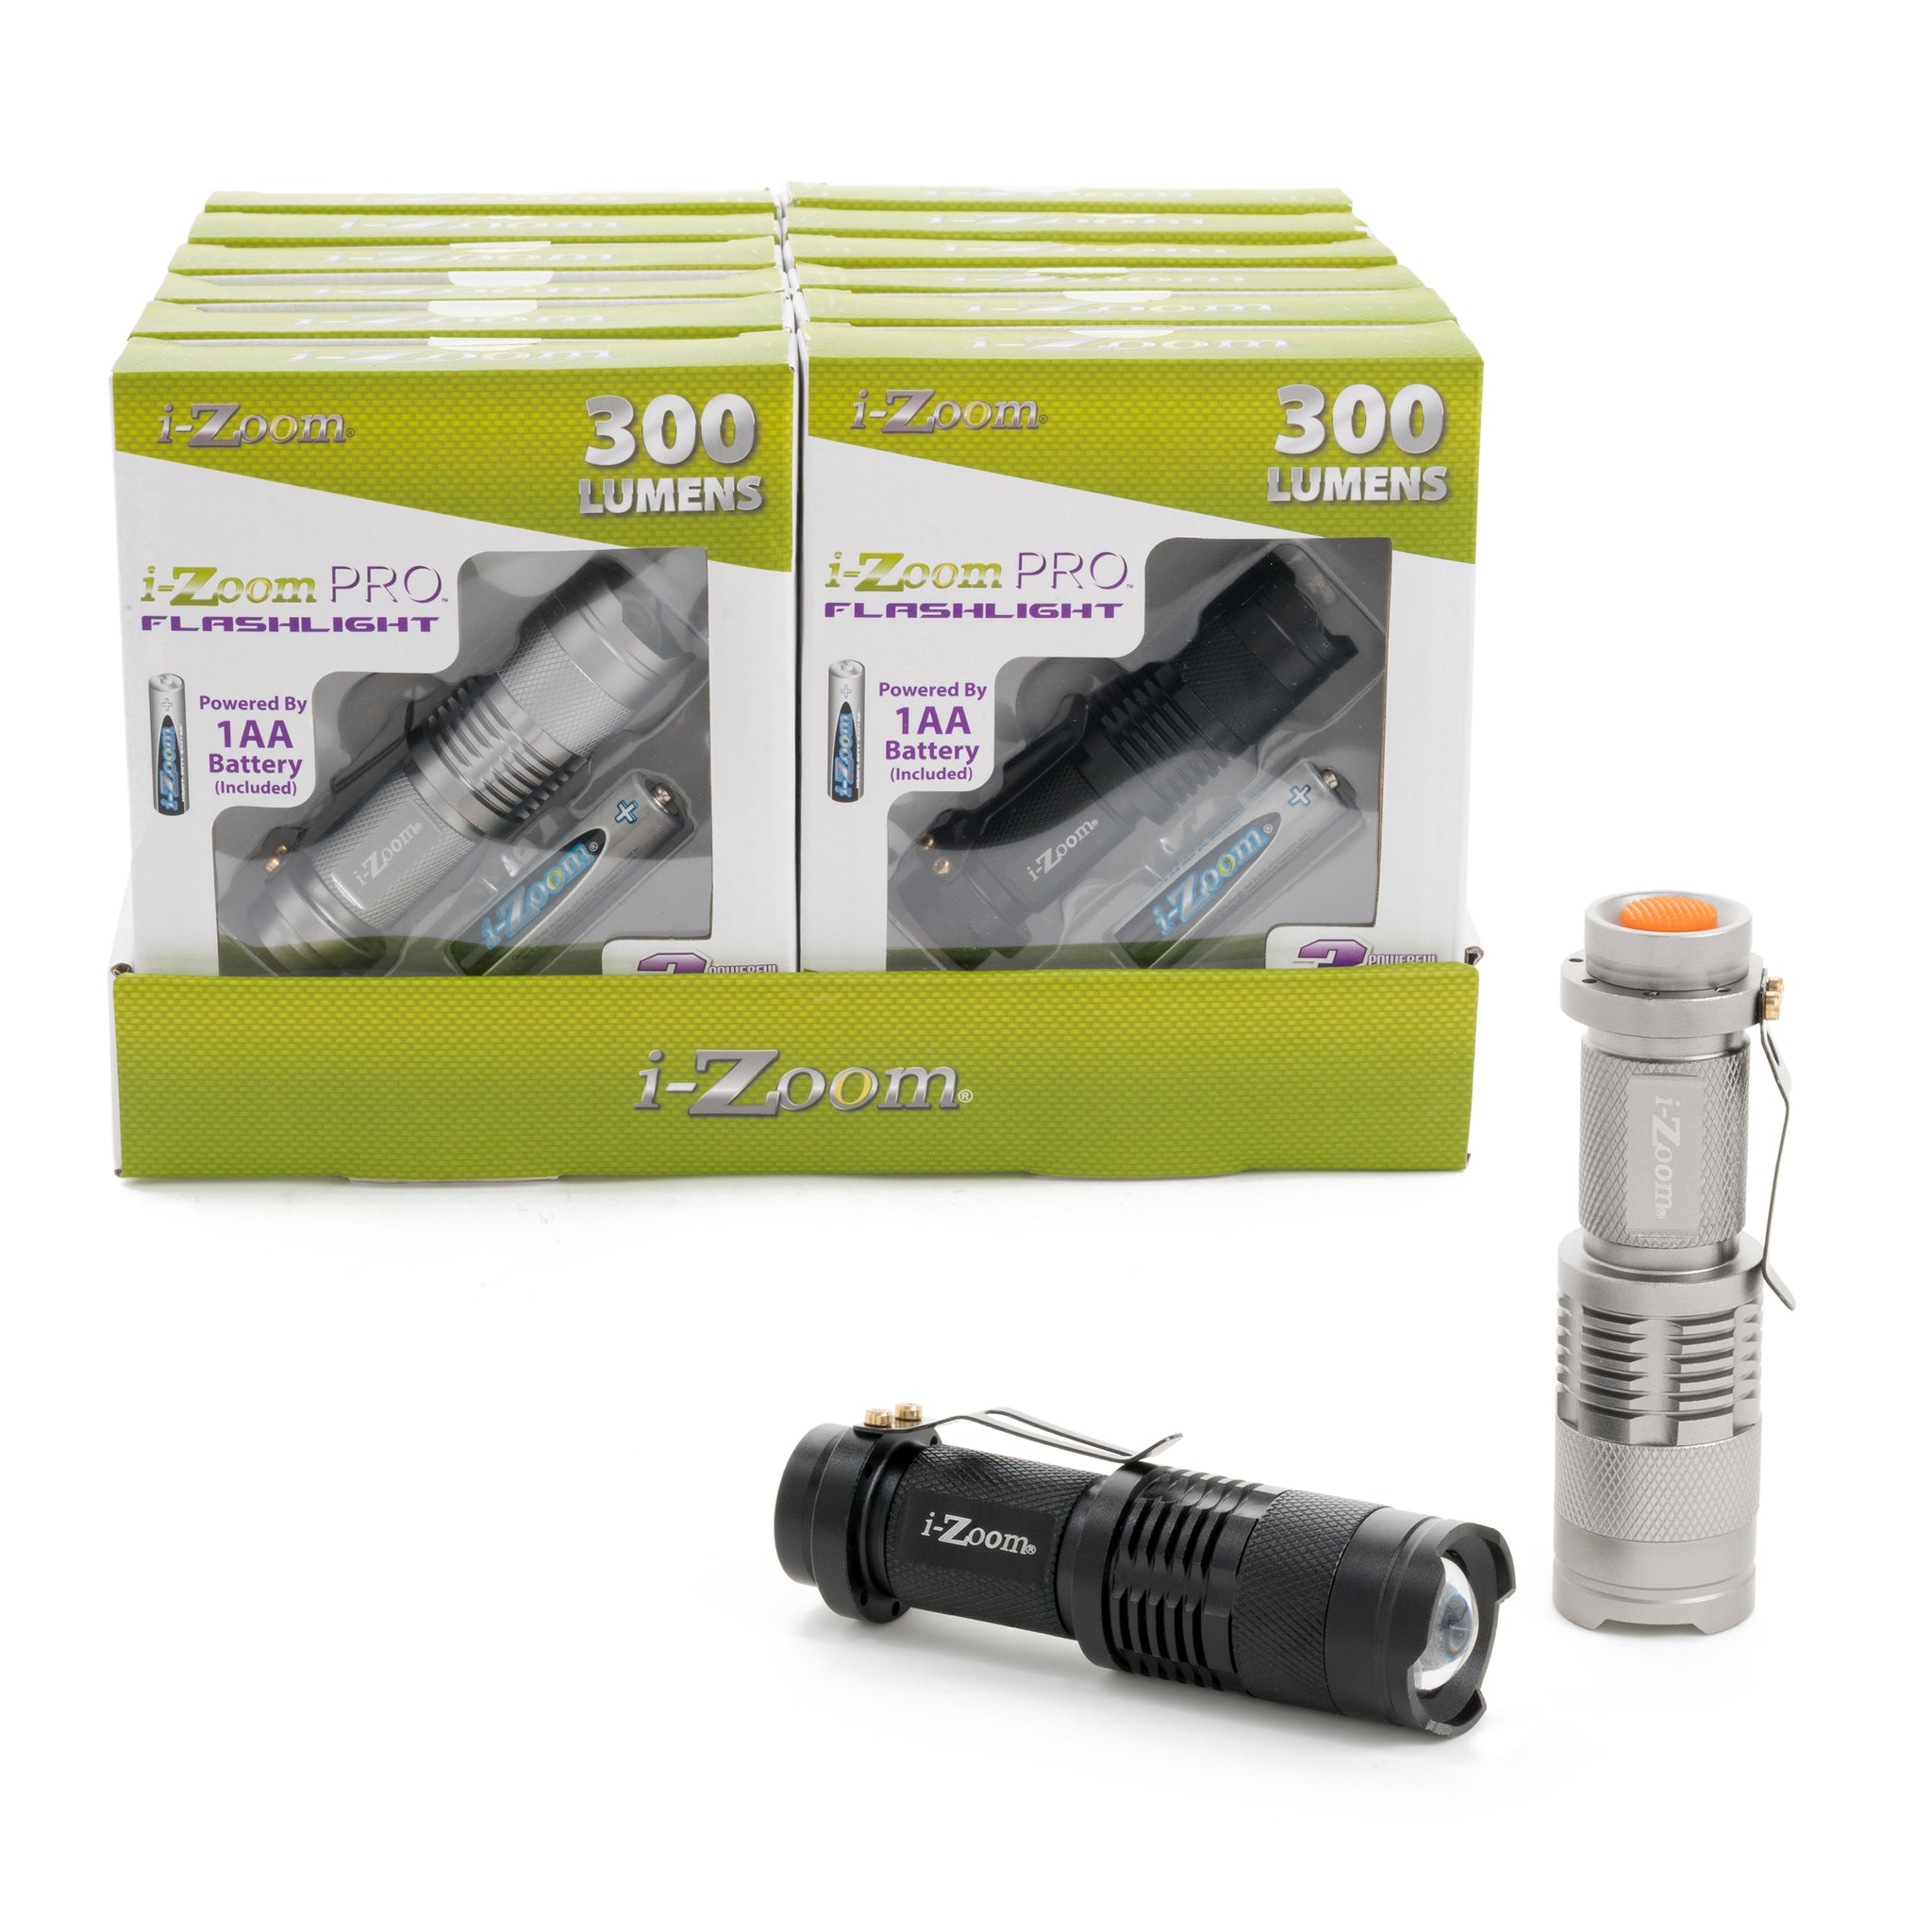 DISCONTINUED: 300 Lumens Compact Flashlight (12 pc DISPLAY)